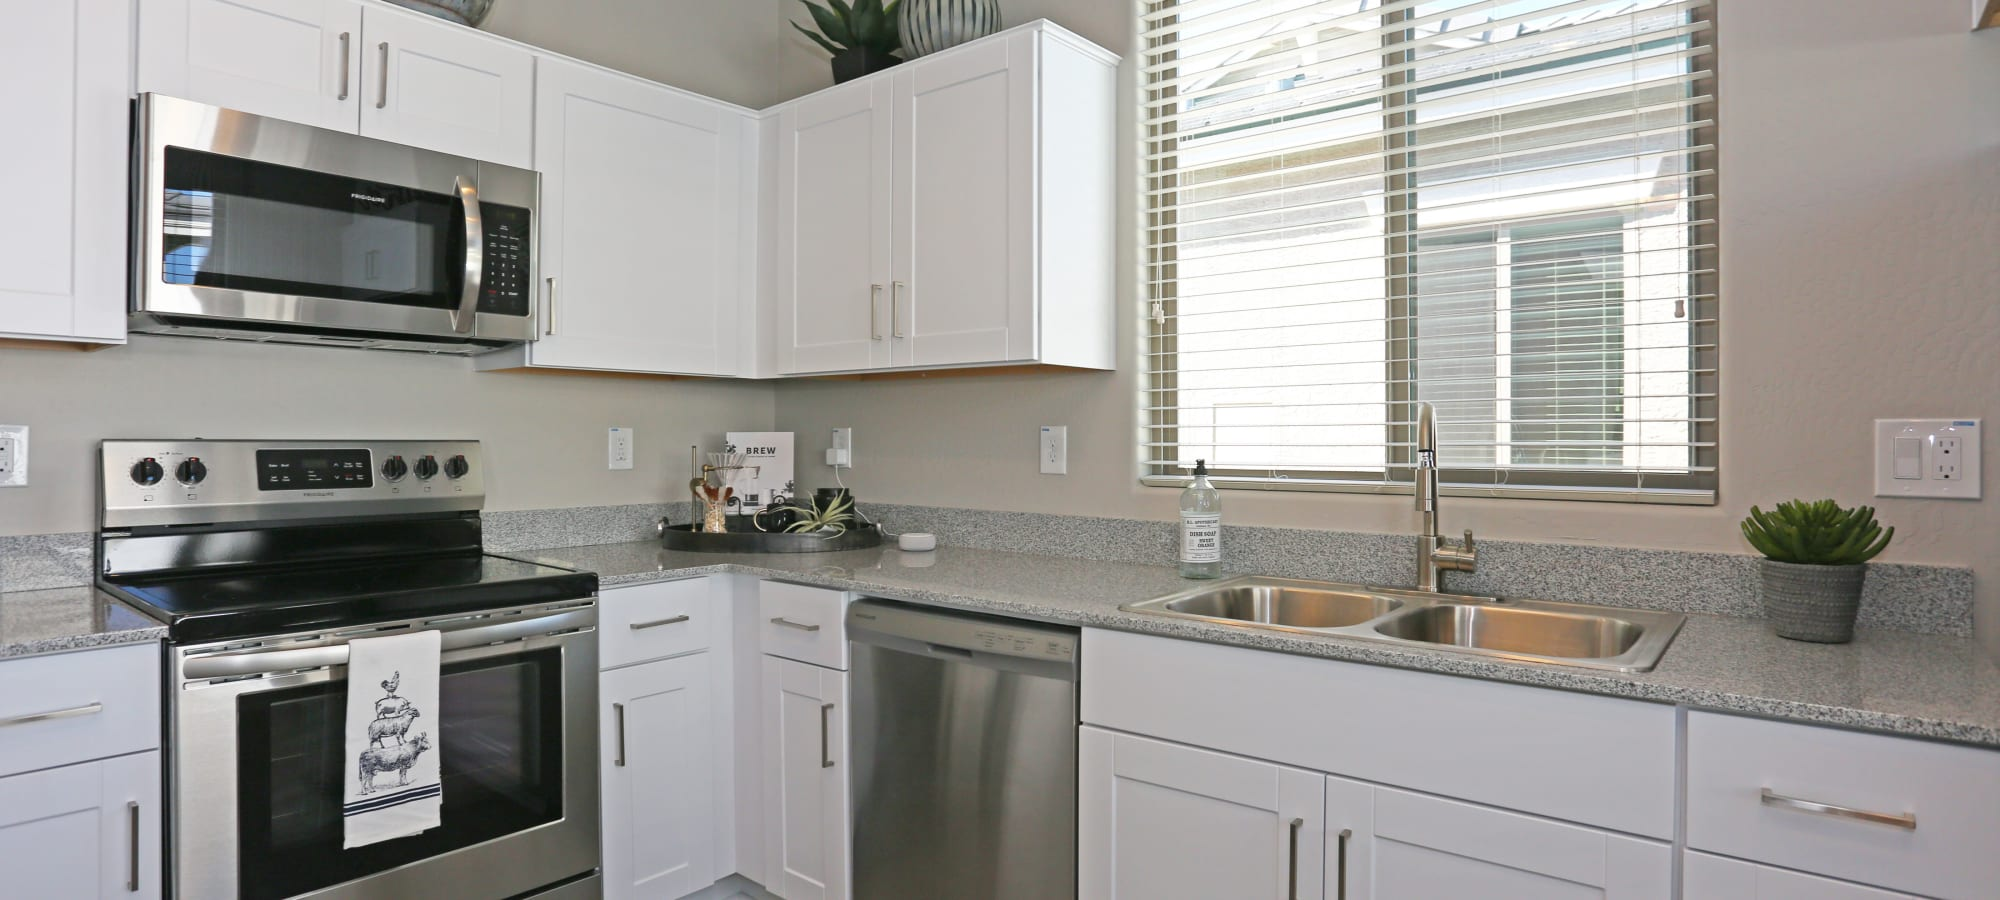 White cabinetry in kitchen of model home at Christopher Todd Communities on Mountain View in Surprise, Arizona